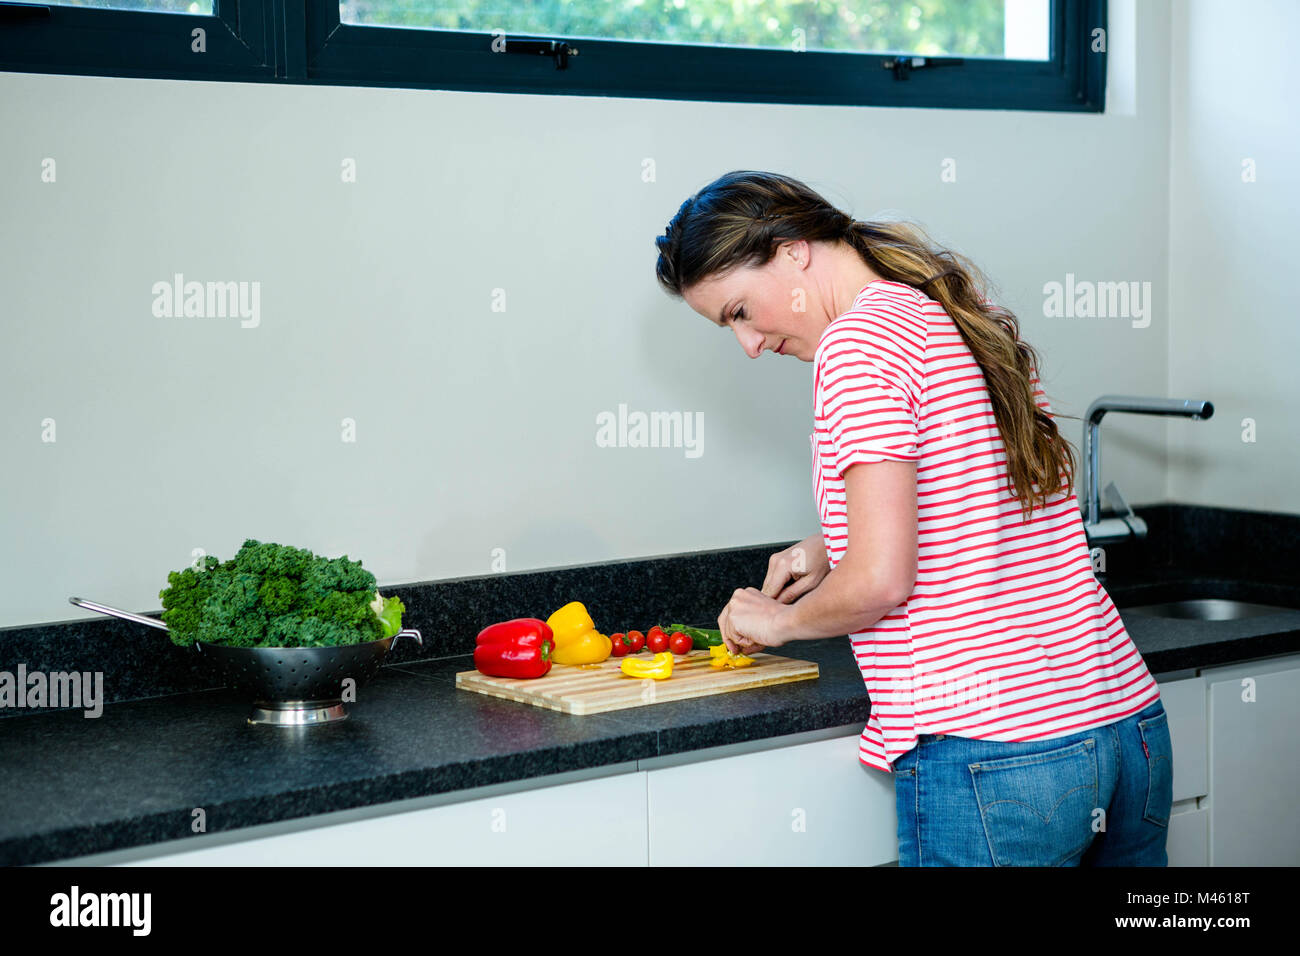 thoughtfull woman preparing vegetables for dinner - Stock Image